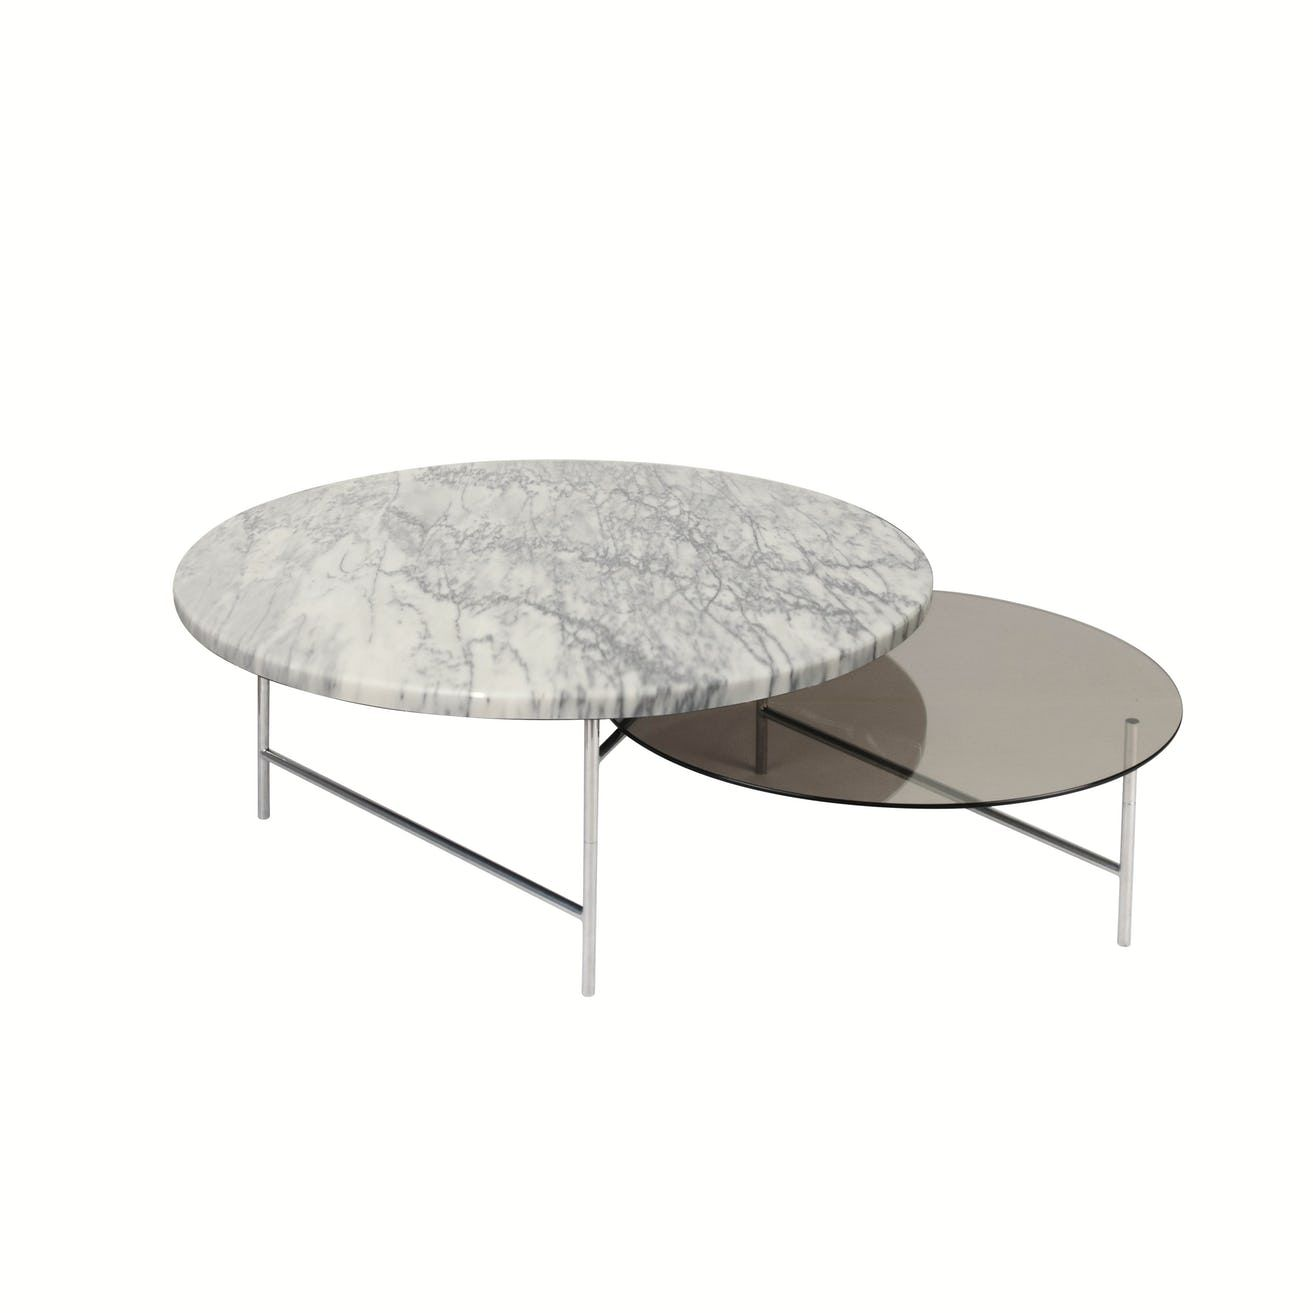 Zorro Coffee Table By La Chance Coffee Table Coffee Table White Furniture